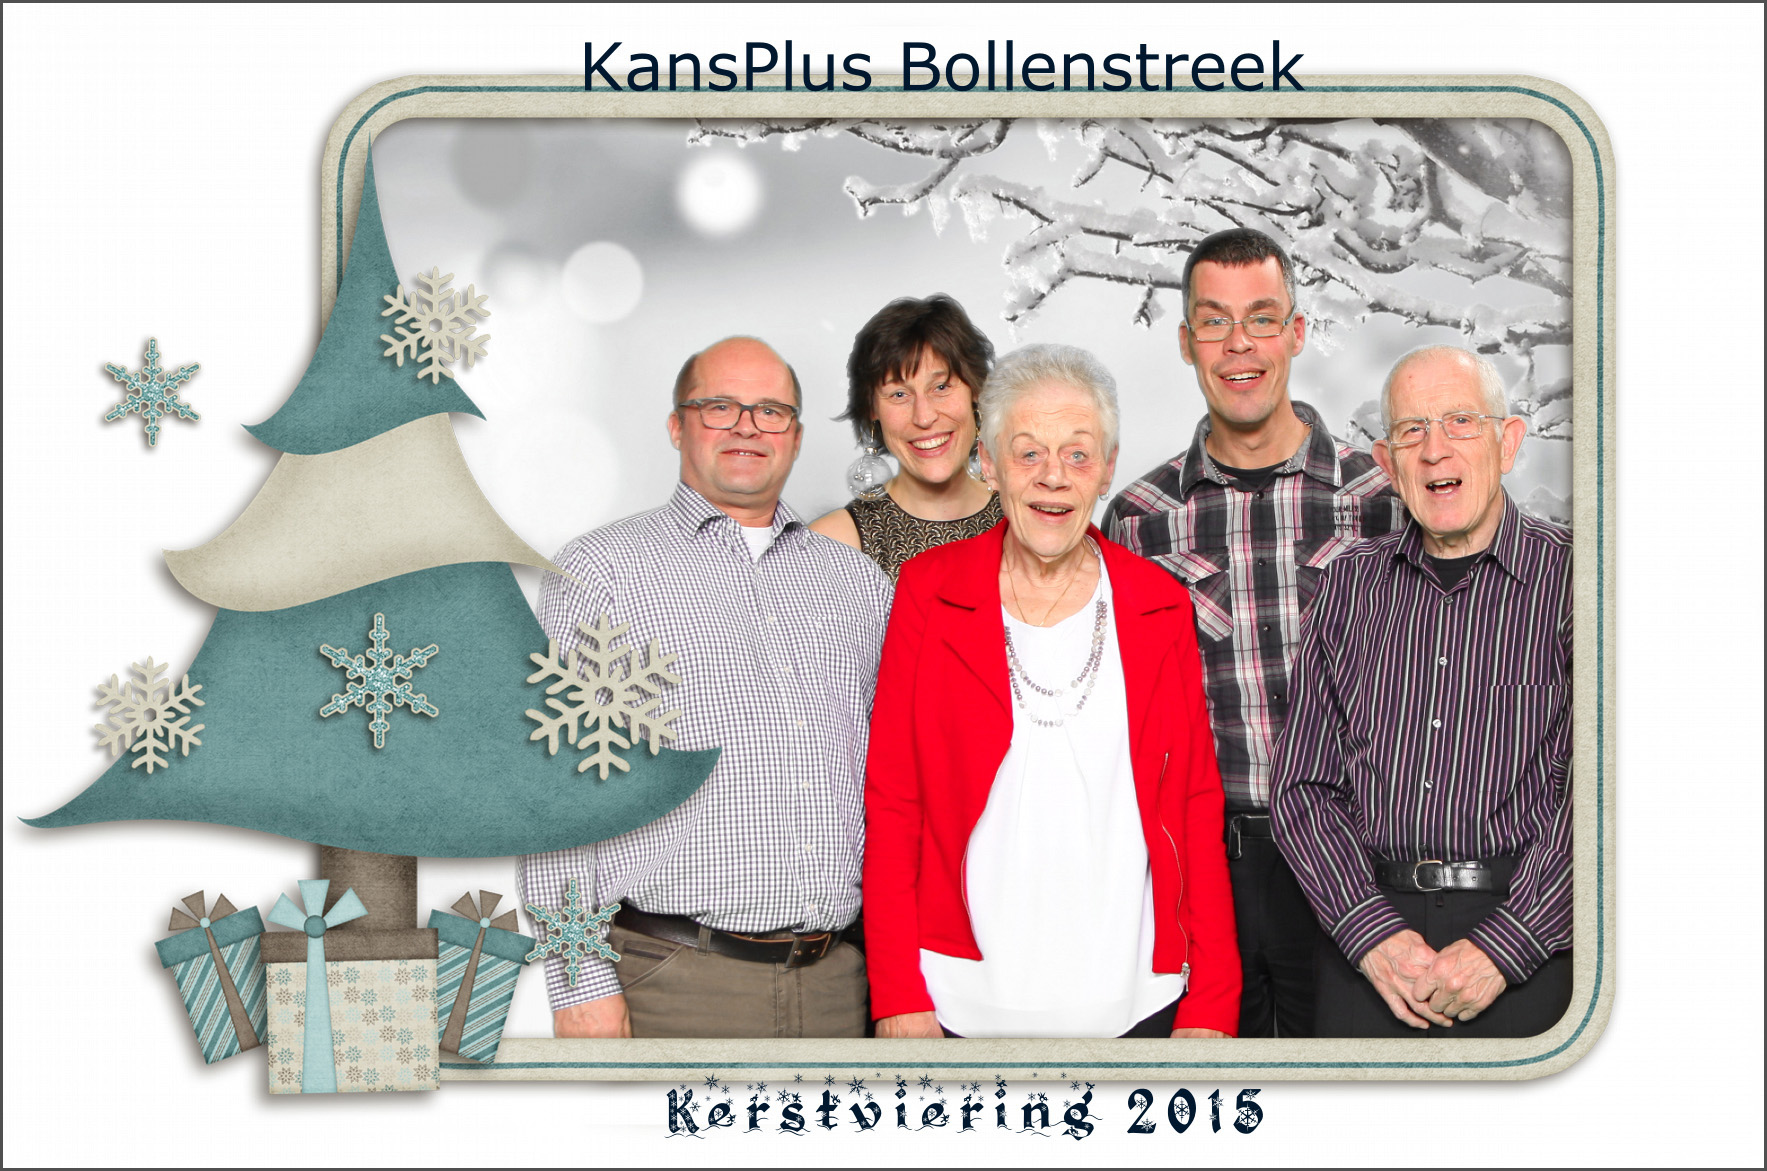 kerst Photo Booth